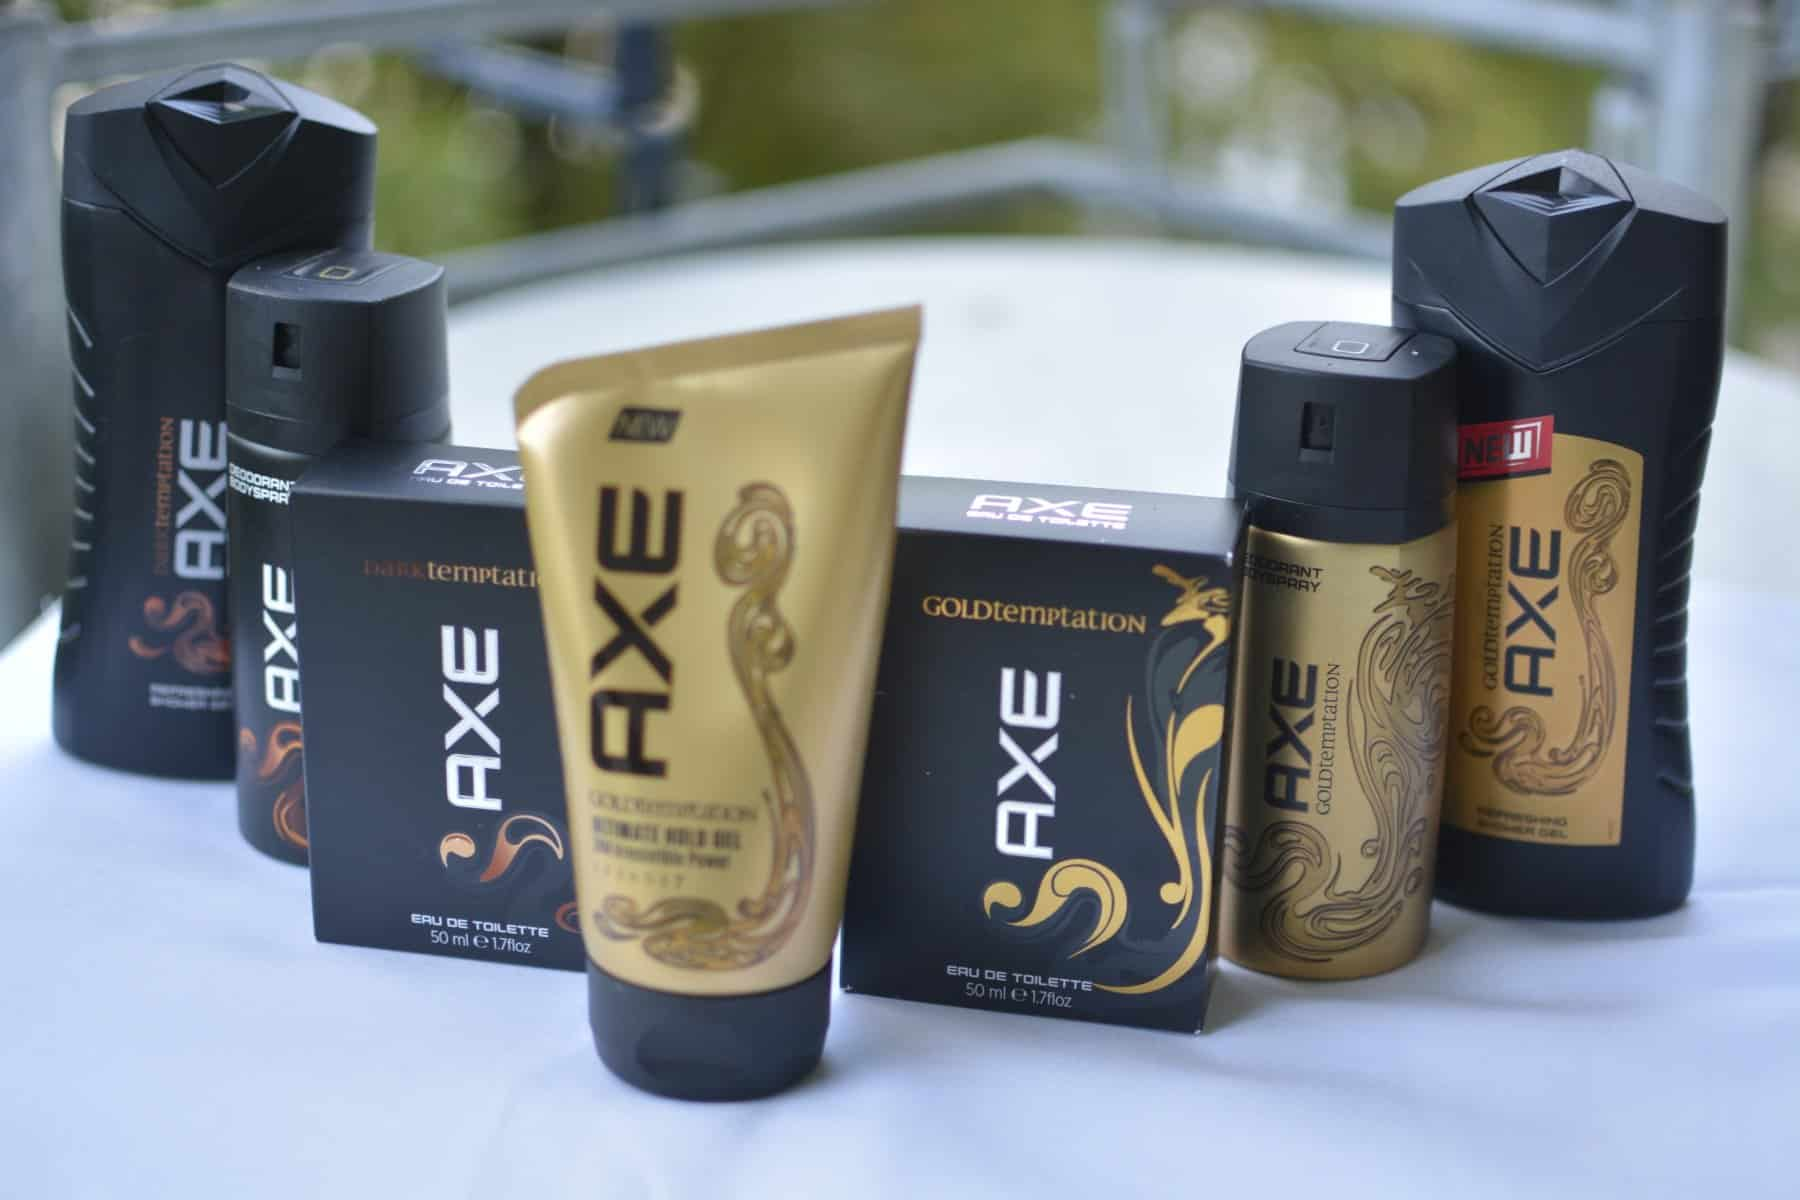 AXE Dark vs. Gold Temptation Testpaket